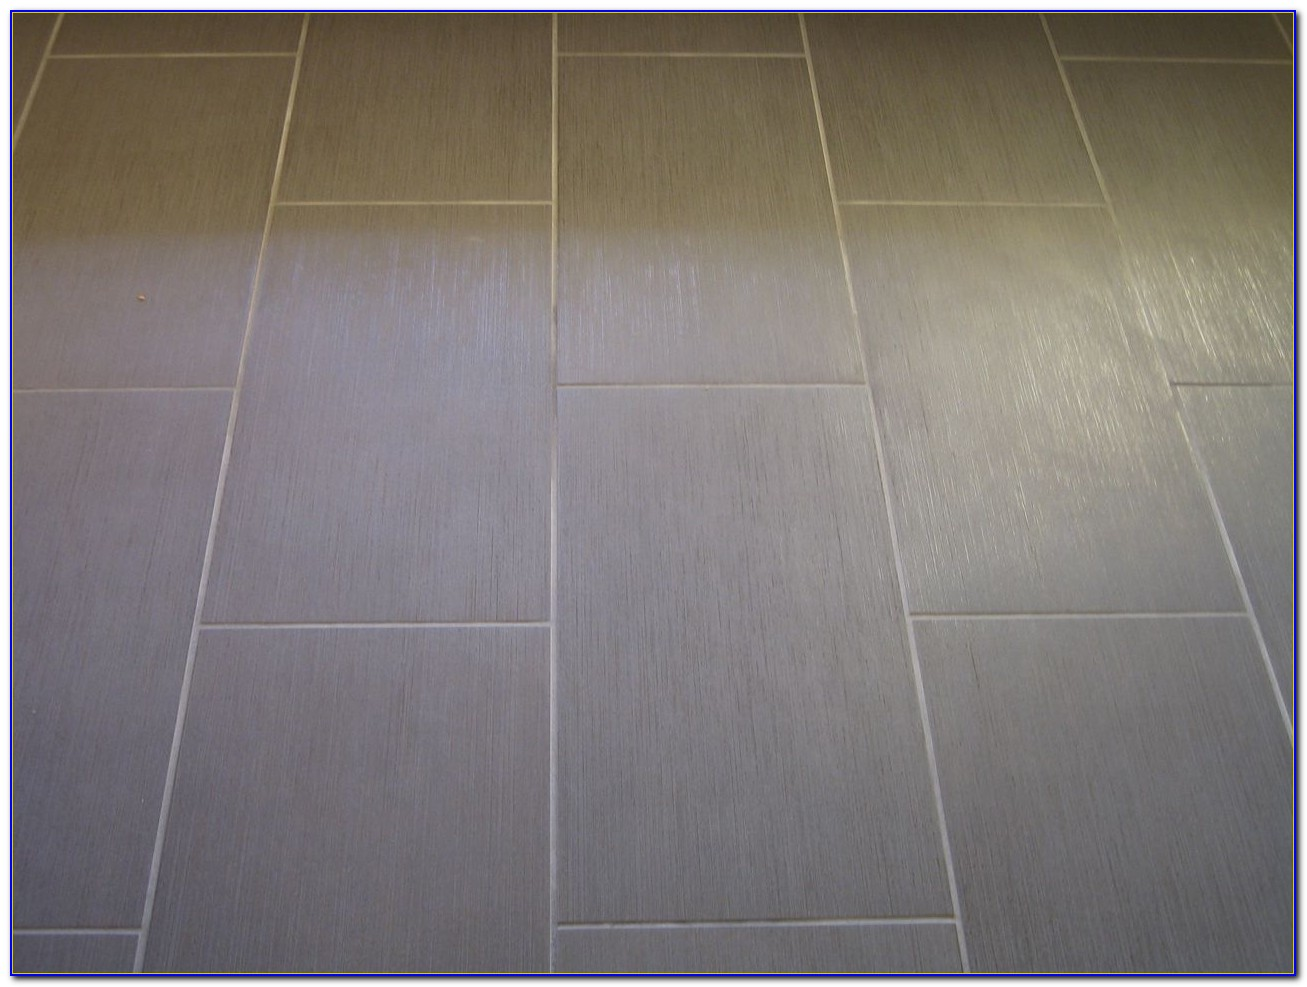 Grout Sealer For Vinyl Tile Tiles Home Design Ideas